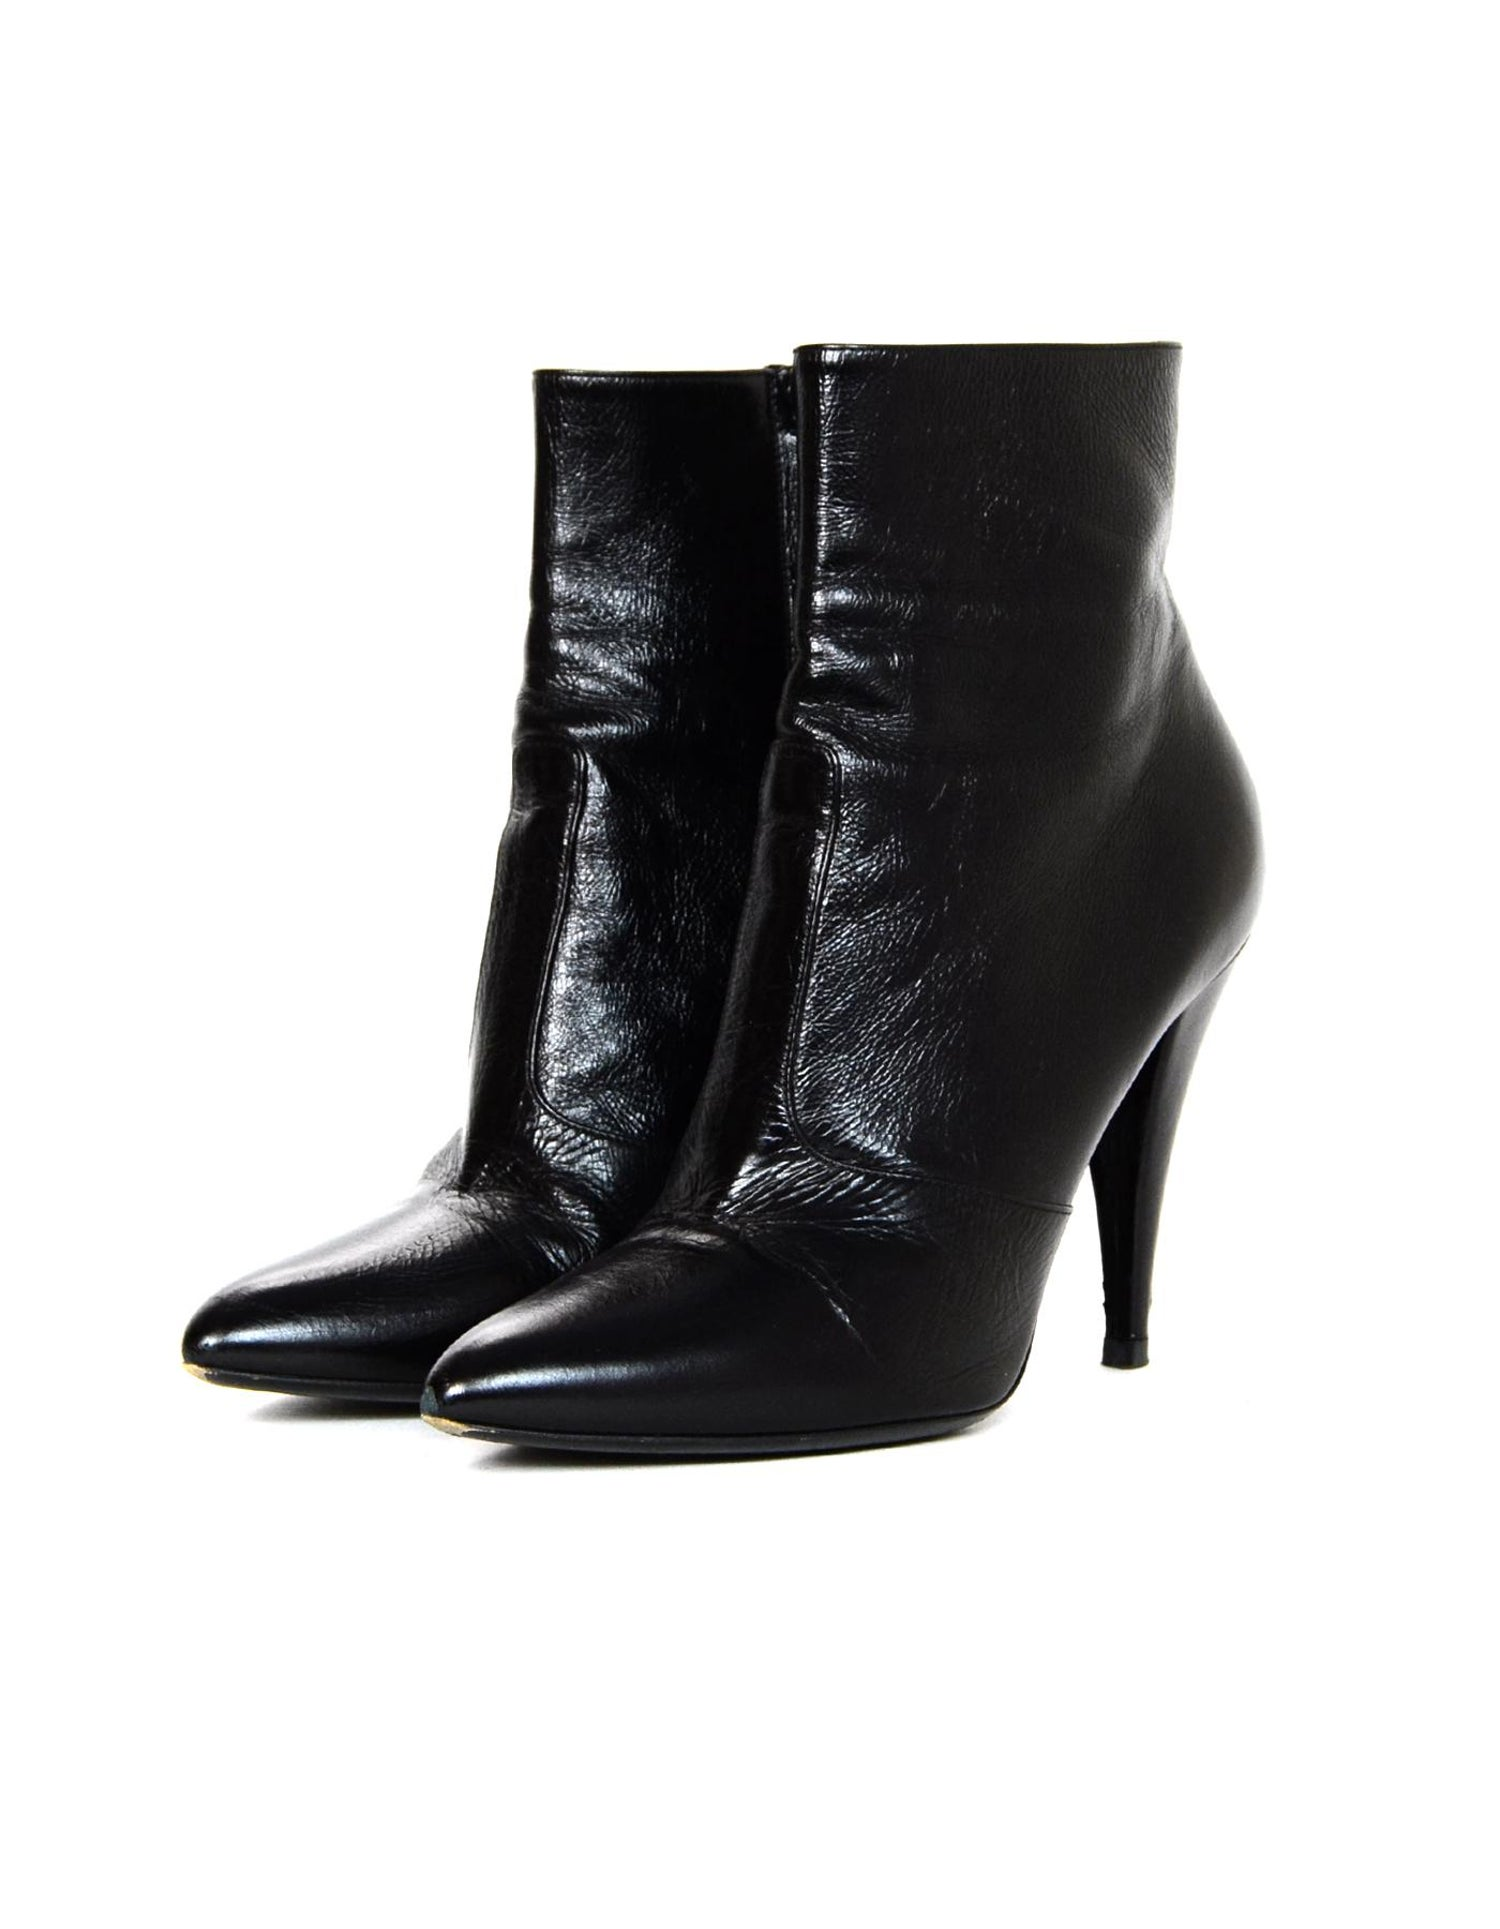 b3d7a0de173 YSL Yves Saint Laurent Fetish Black Leather Ankle Boot Sz 40 For Sale at  1stdibs